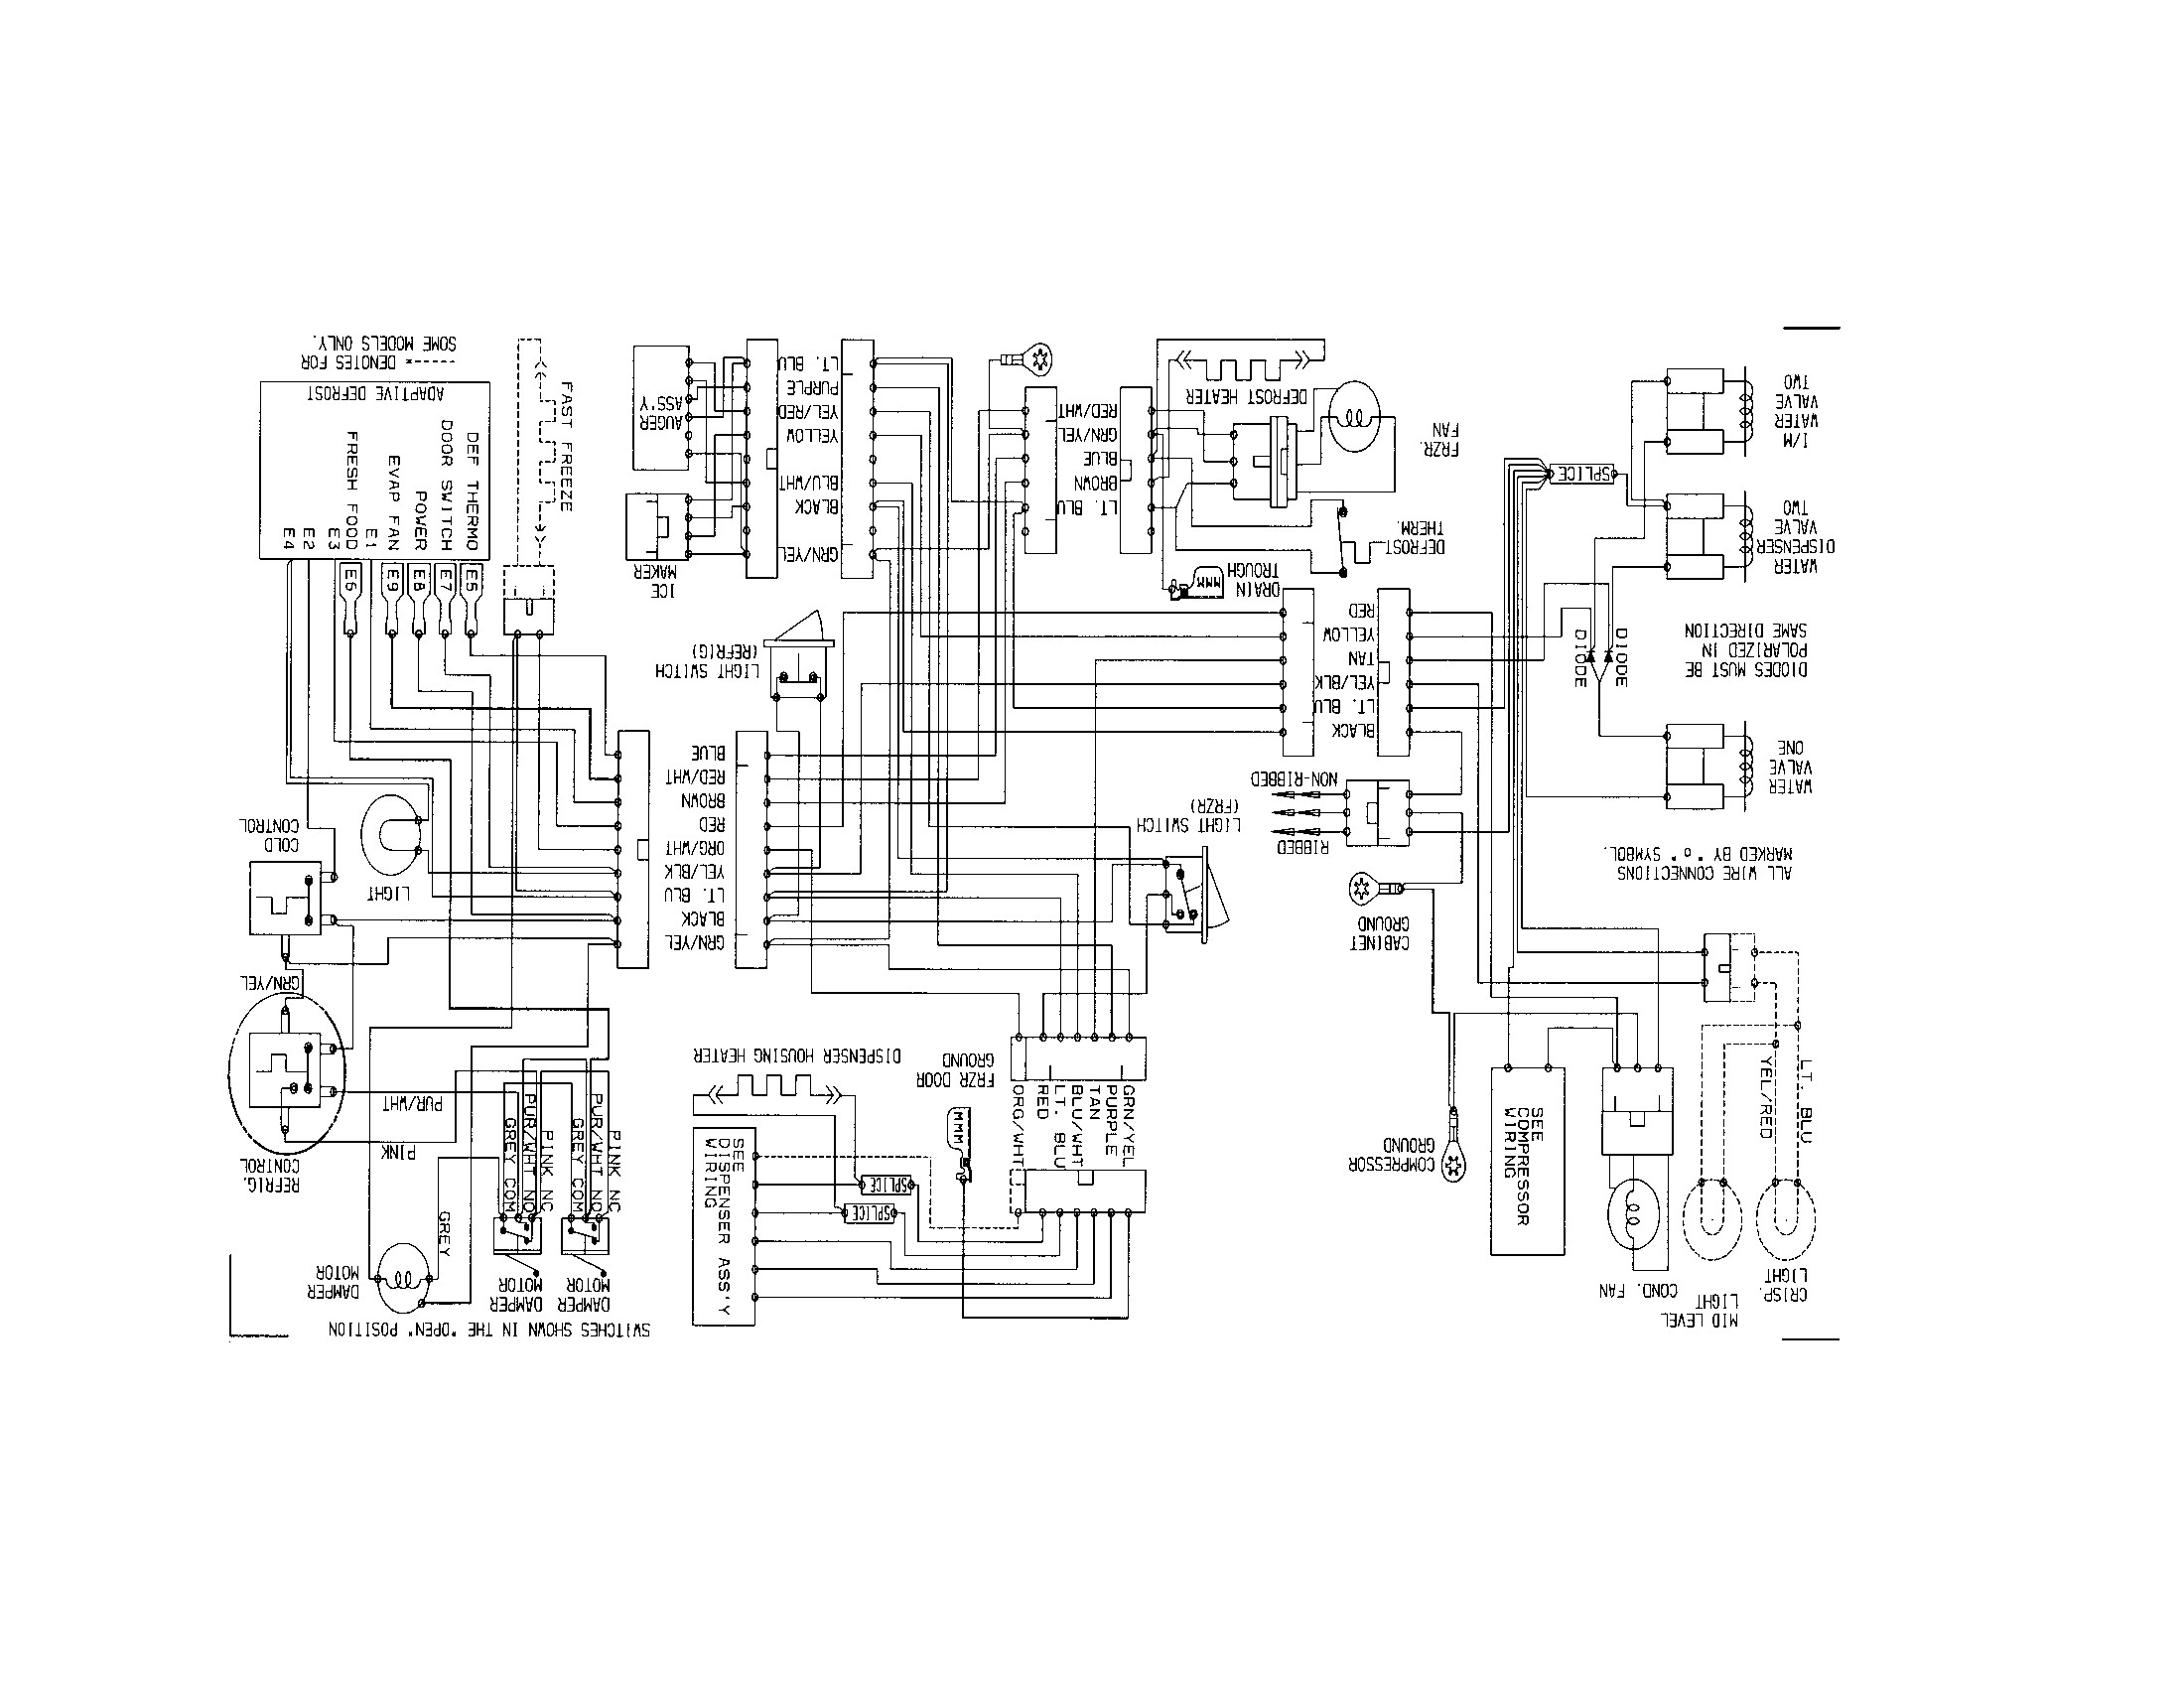 Sears refrigerator wiring diagram wire center kenmore refrigerator wiring diagram wire center u2022 rh boomerneur co kenmore coldspot refrigerator wiring diagram ge cheapraybanclubmaster Image collections